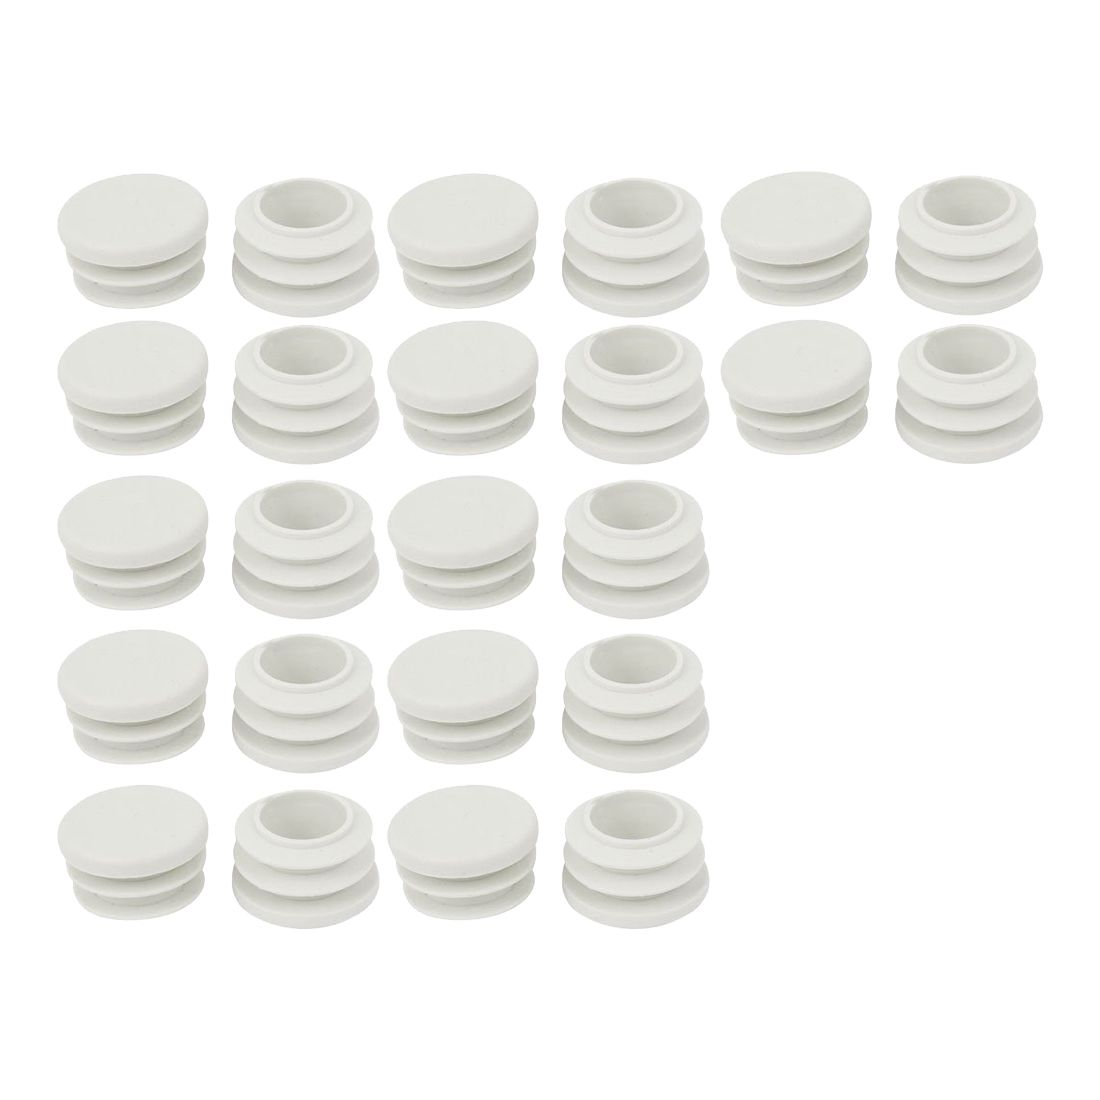 18mm Diameter Plastic White Plug Caps Inserts For Tubes Cap 24 Pieces 18mm Diameter Plastic White Plug Caps Inserts For Tubes Cap 24 Pieces